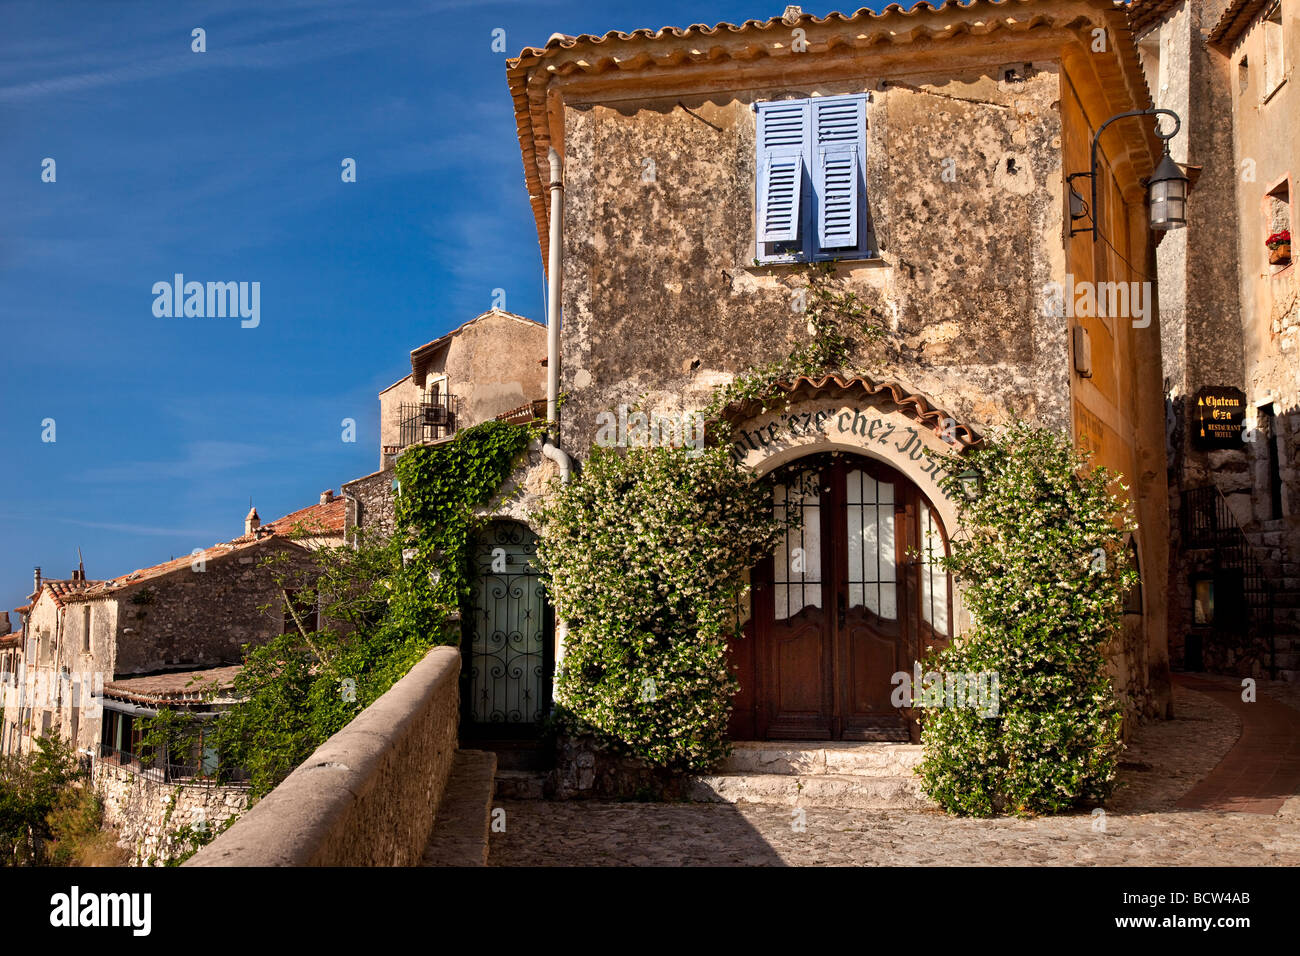 Jasmine flowers covering entryway to building in Eze, Provence France - Stock Image